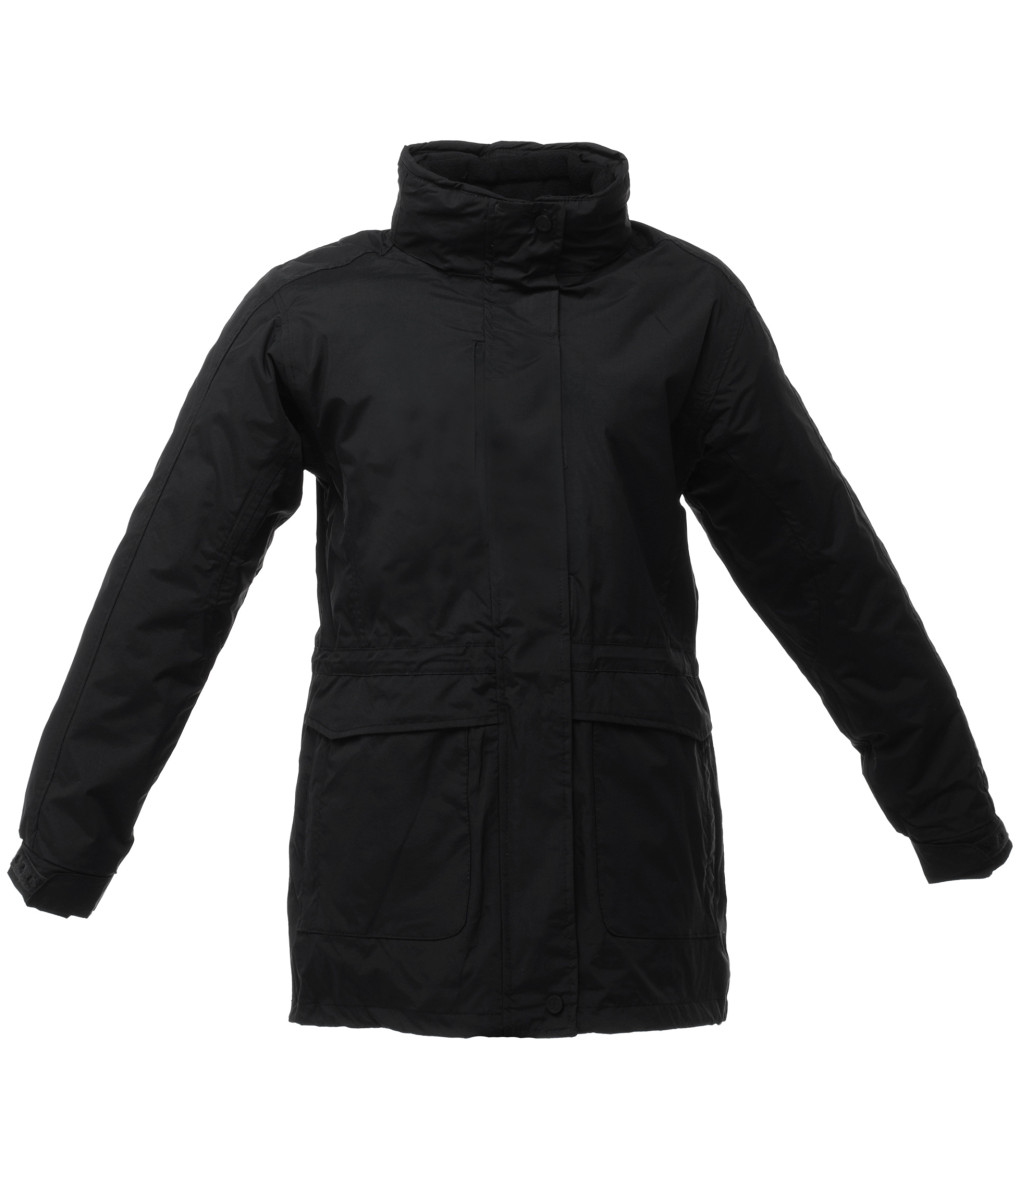 Ladies' Benson II 3 in 1 Jacket